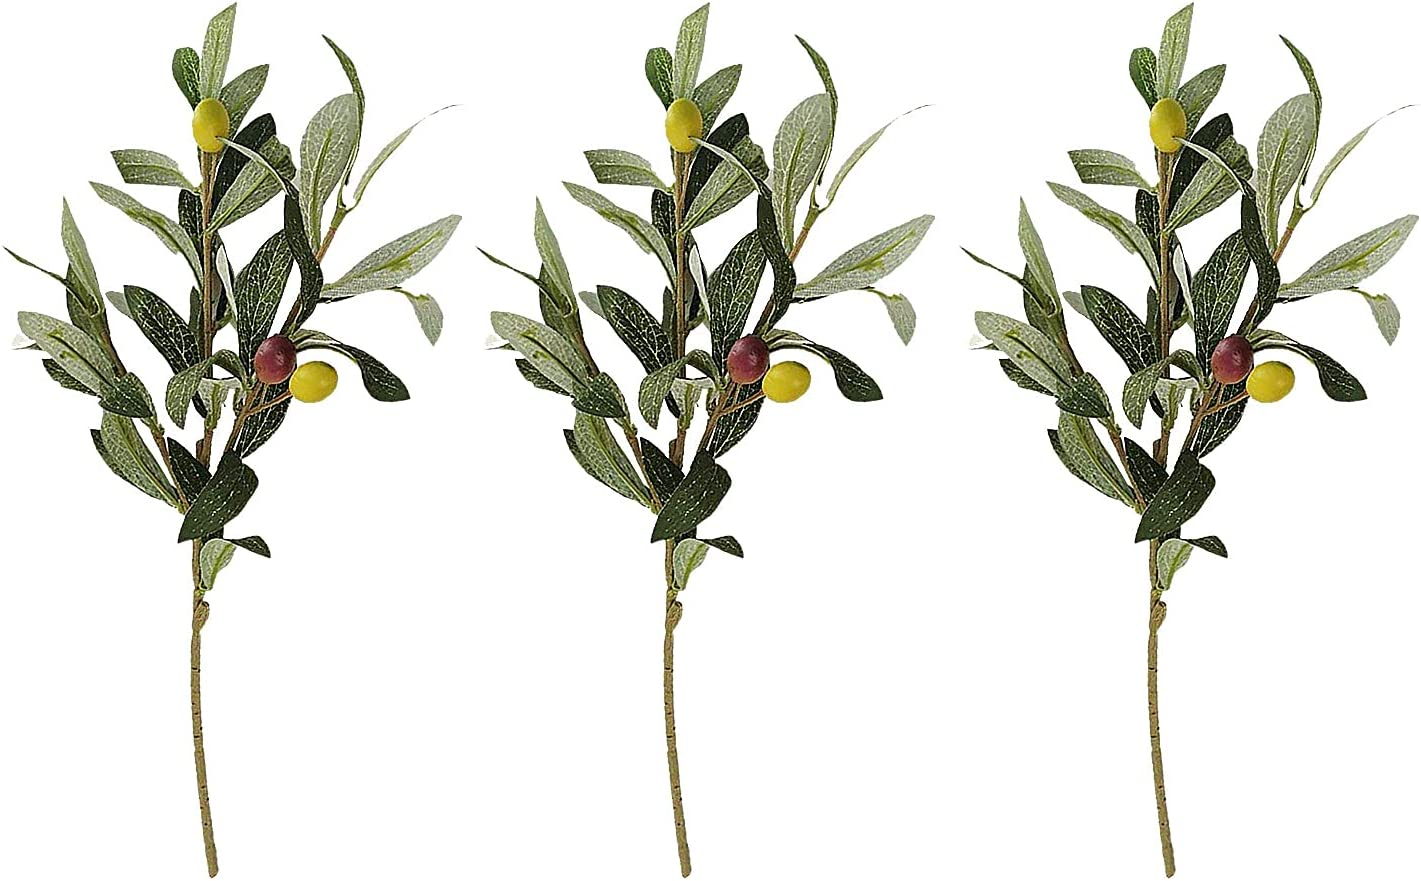 2021 autumn and winter new MSUIINT Artificial Olive SALENEW very popular Leaves Stem Tree Branches 14.2 I